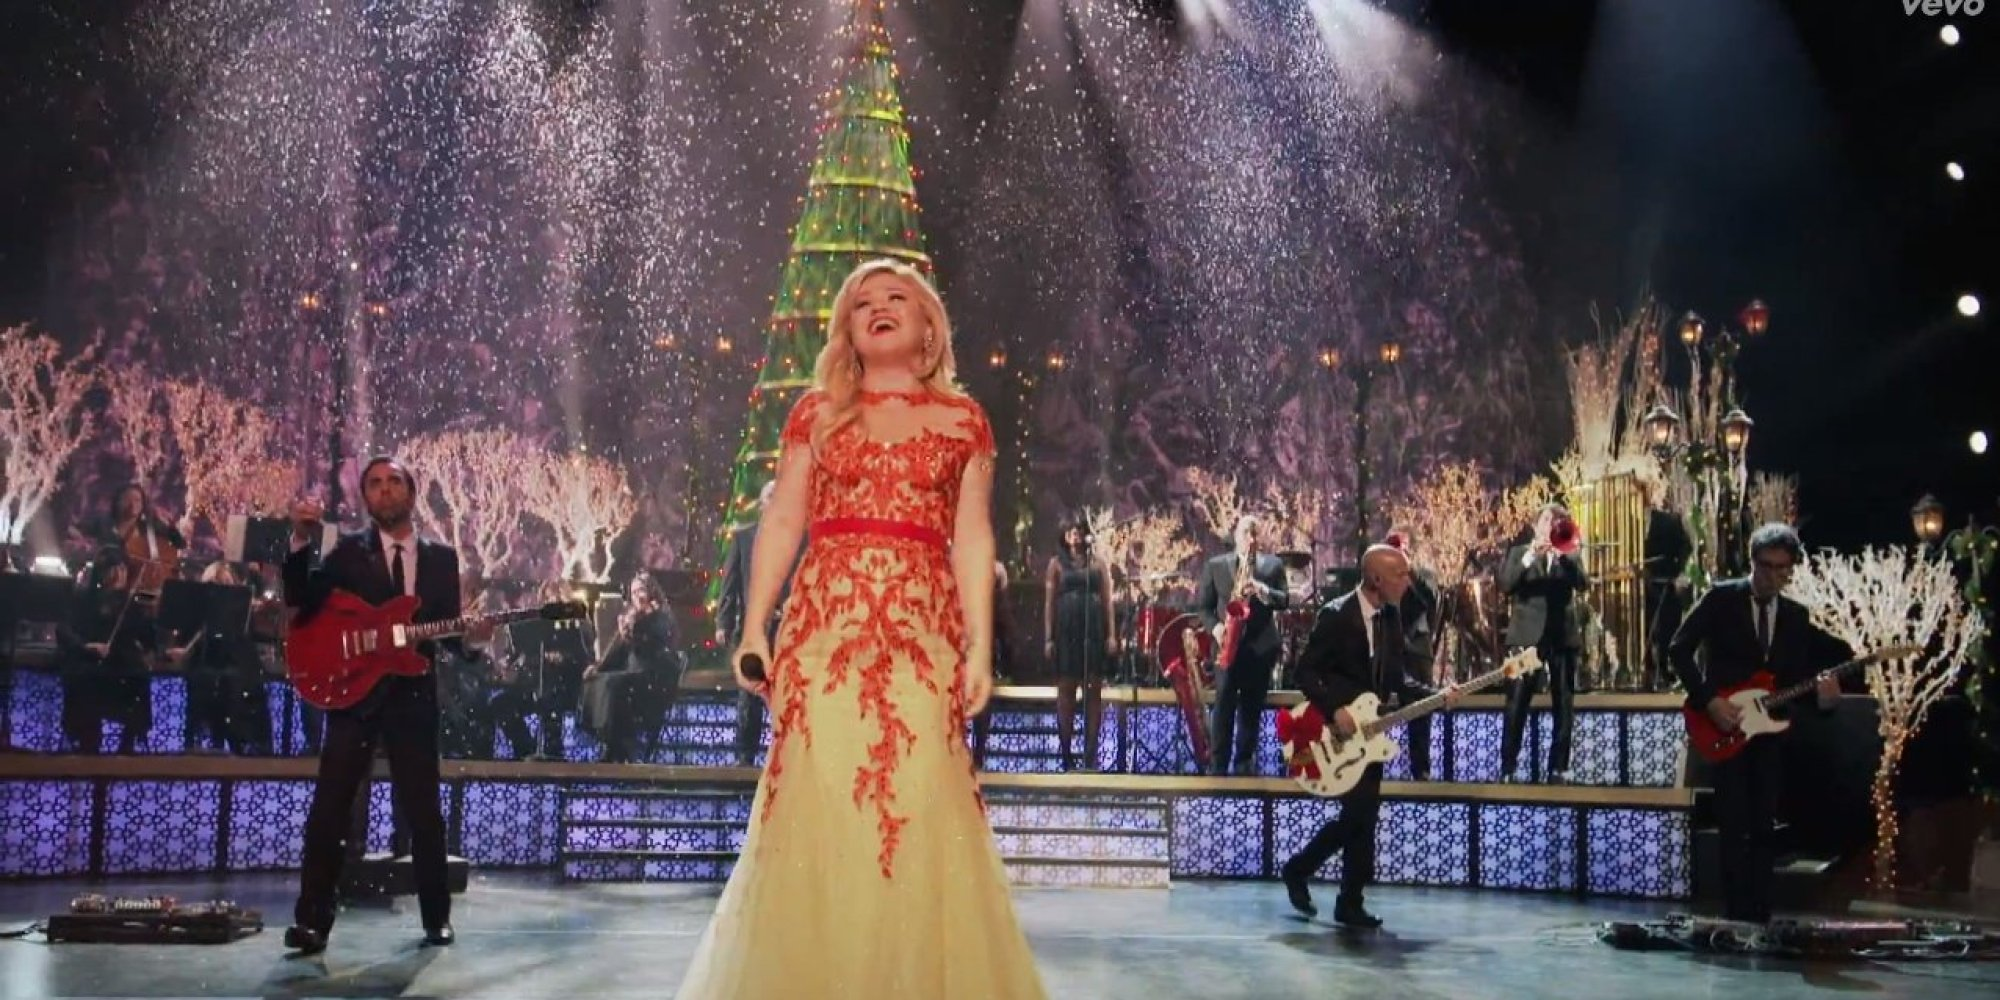 'Underneath The Tree' Video Gets Kelly Clarkson In The